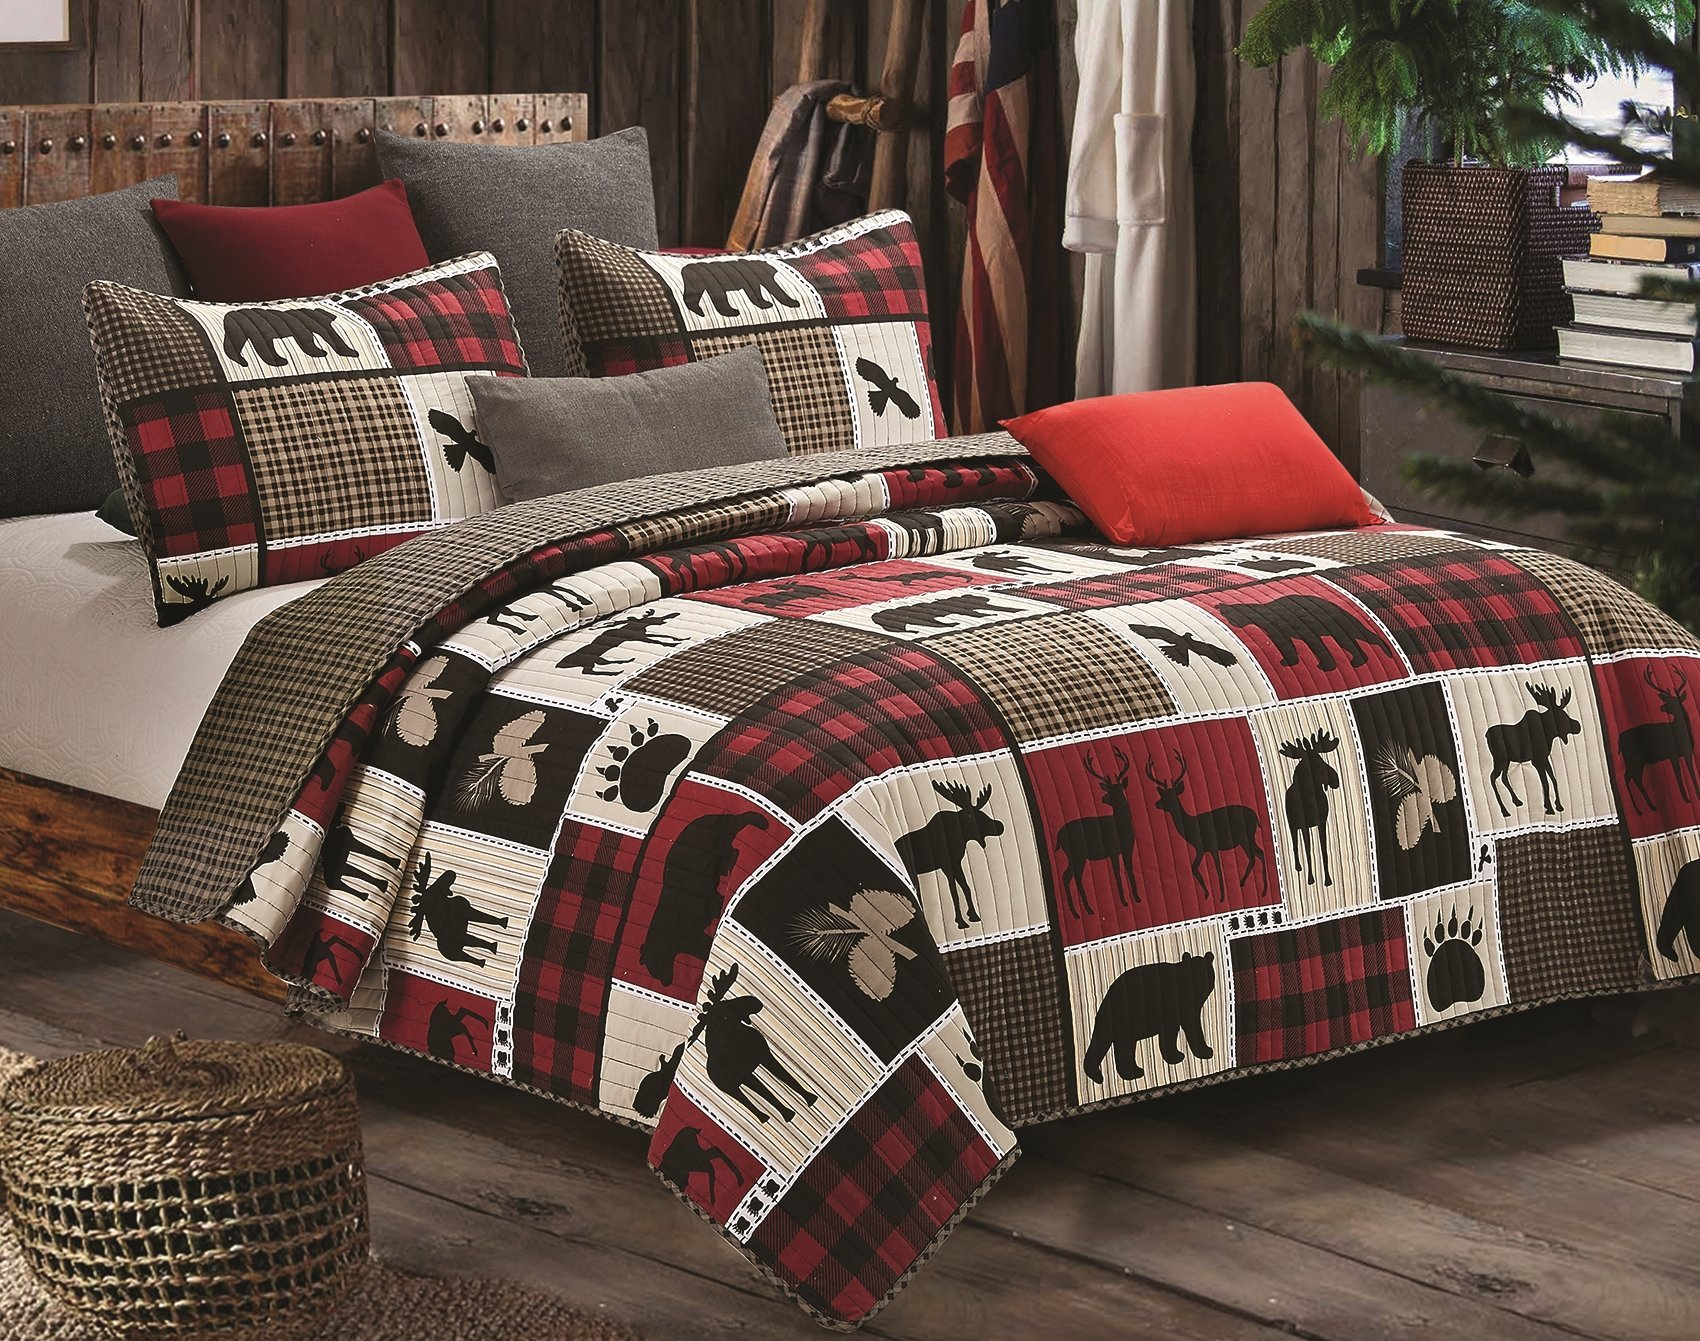 Virah Bella Lodge Life 3pc Full/Queen Quilt Set, Black Bear Paw Moose Cabin Red Buffalo Check Plaid by Regal